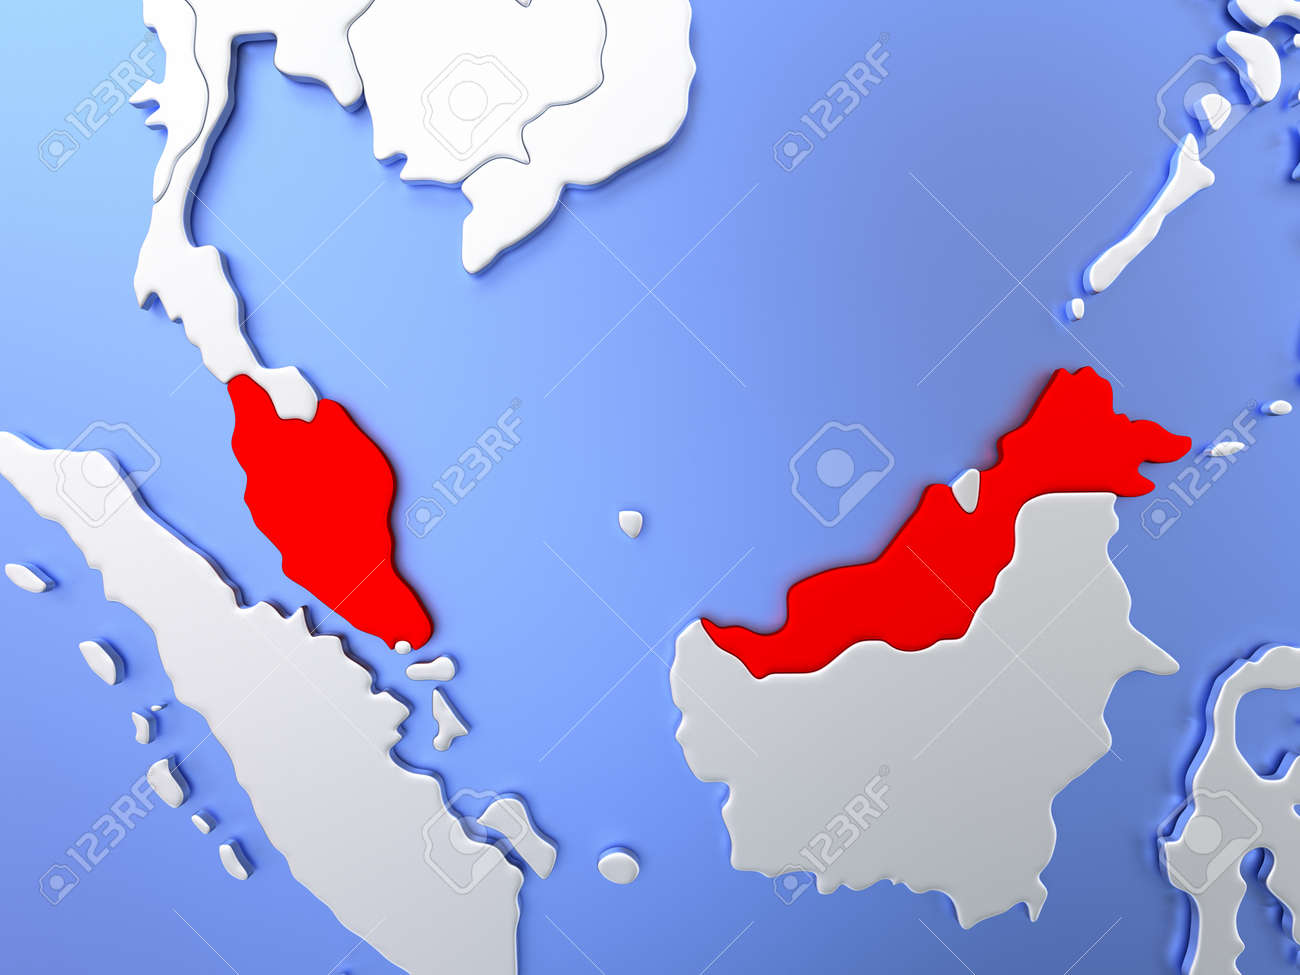 Map Of Malaysia Highlighted In Red On Simple Shiny Metallic Map Stock Photo Picture And Royalty Free Image Image 72318403